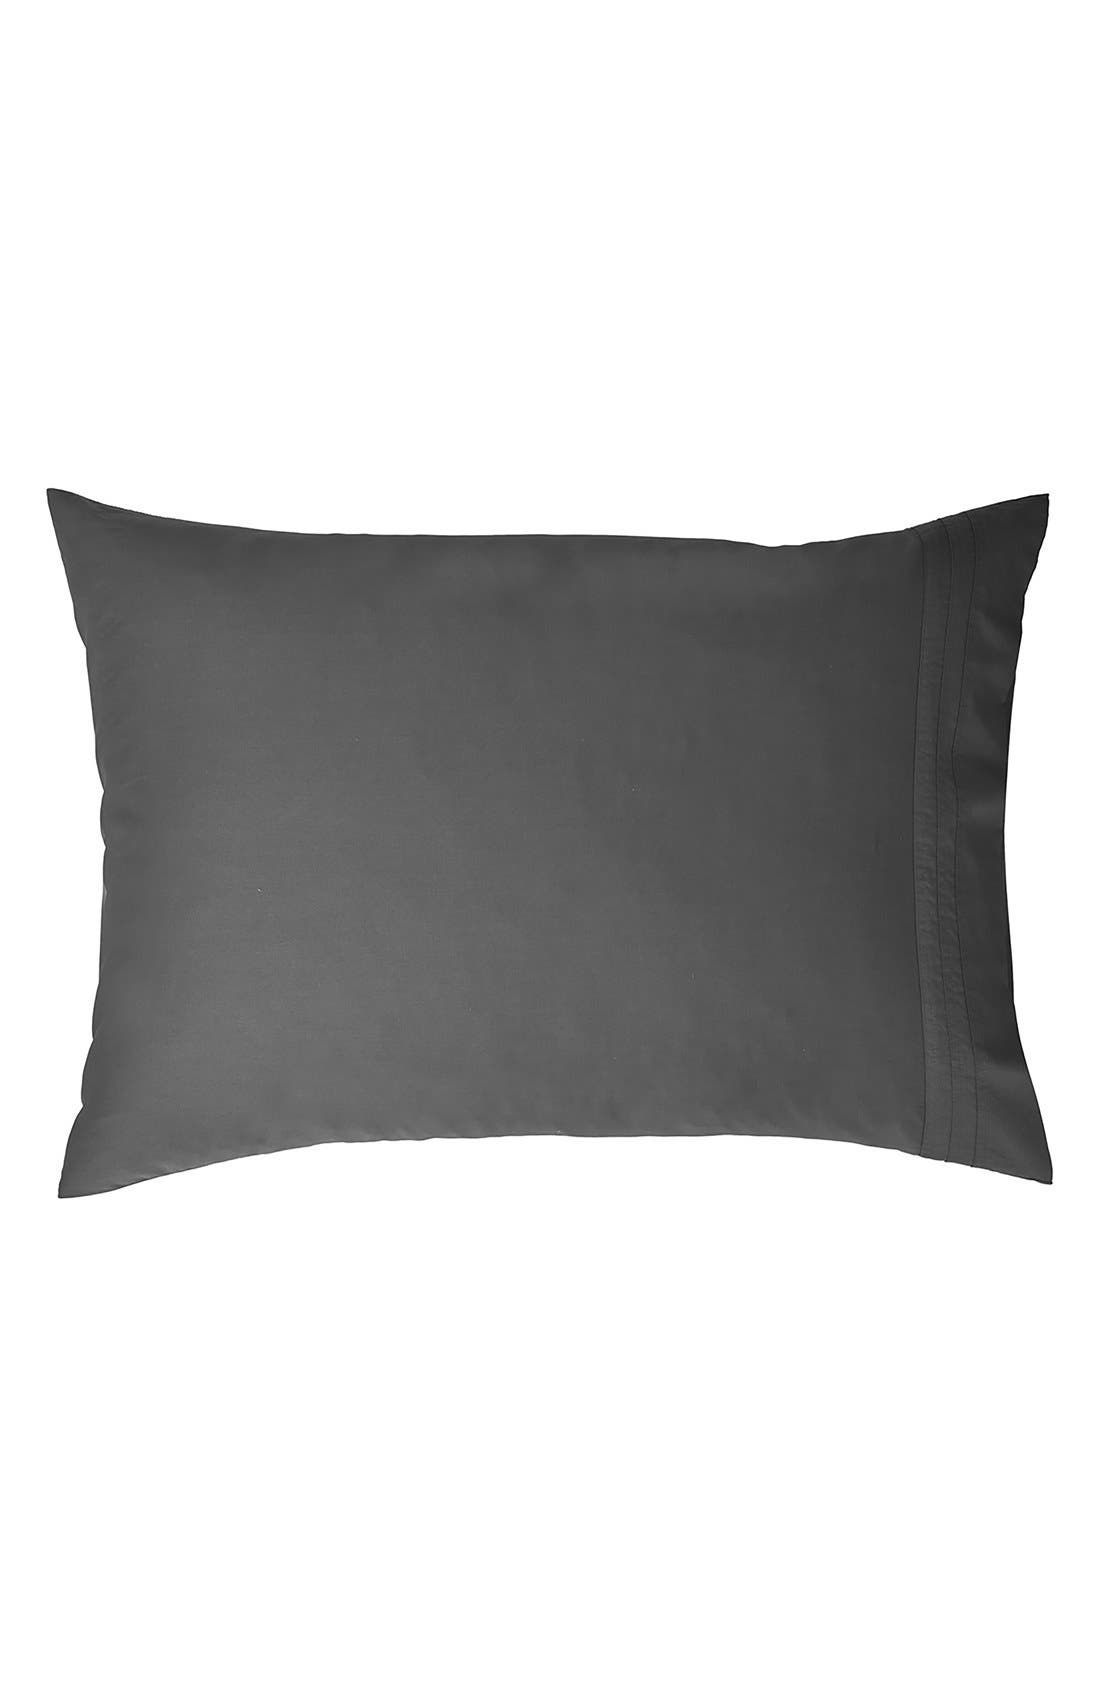 Donna Karan Collection 510 Thread Count Pillowcases,                             Main thumbnail 1, color,                             Charcoal Grey